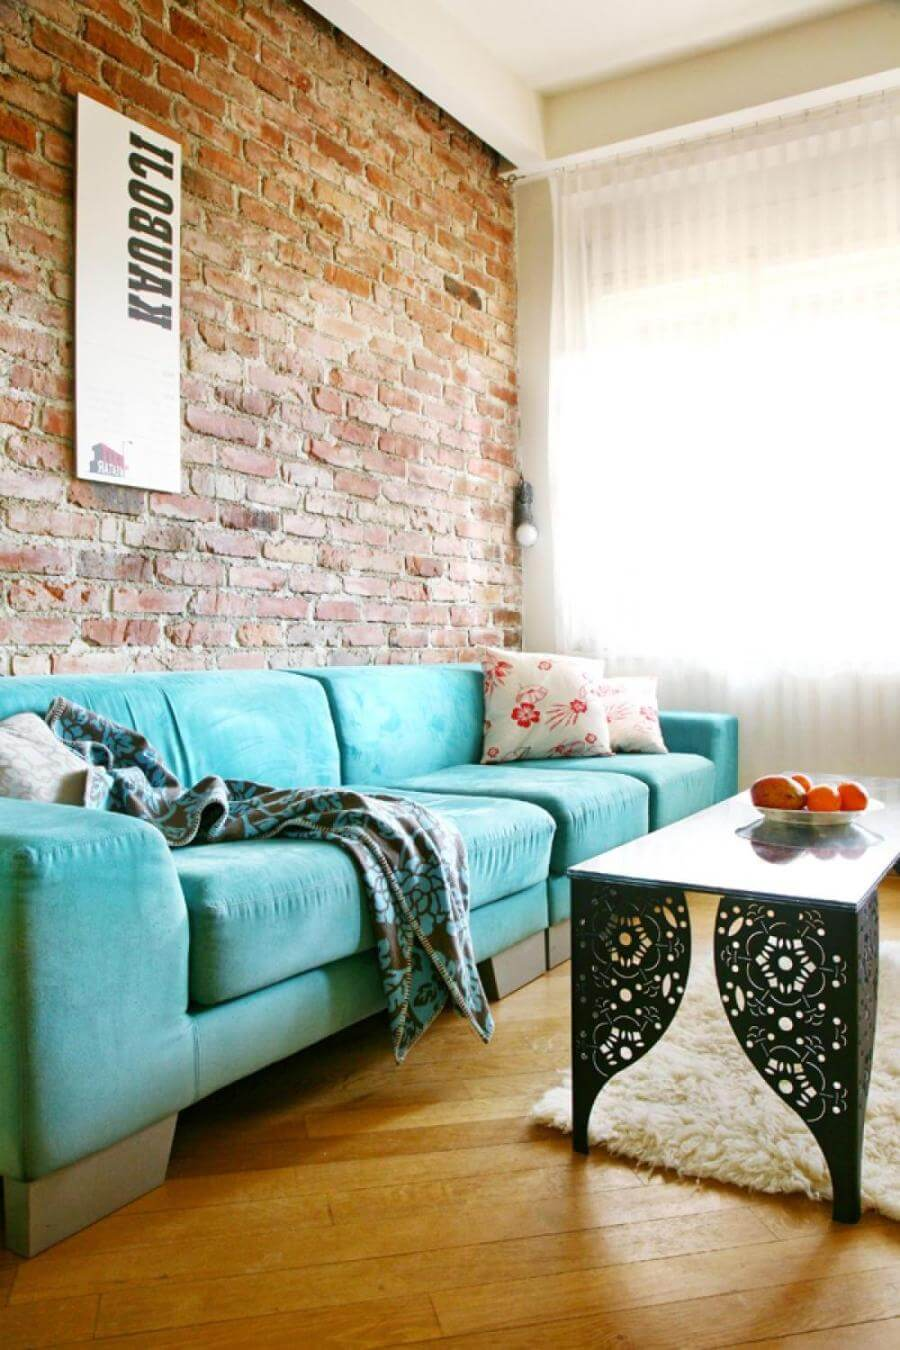 10 Brick Walls Living Room Interior Design Ideas Https